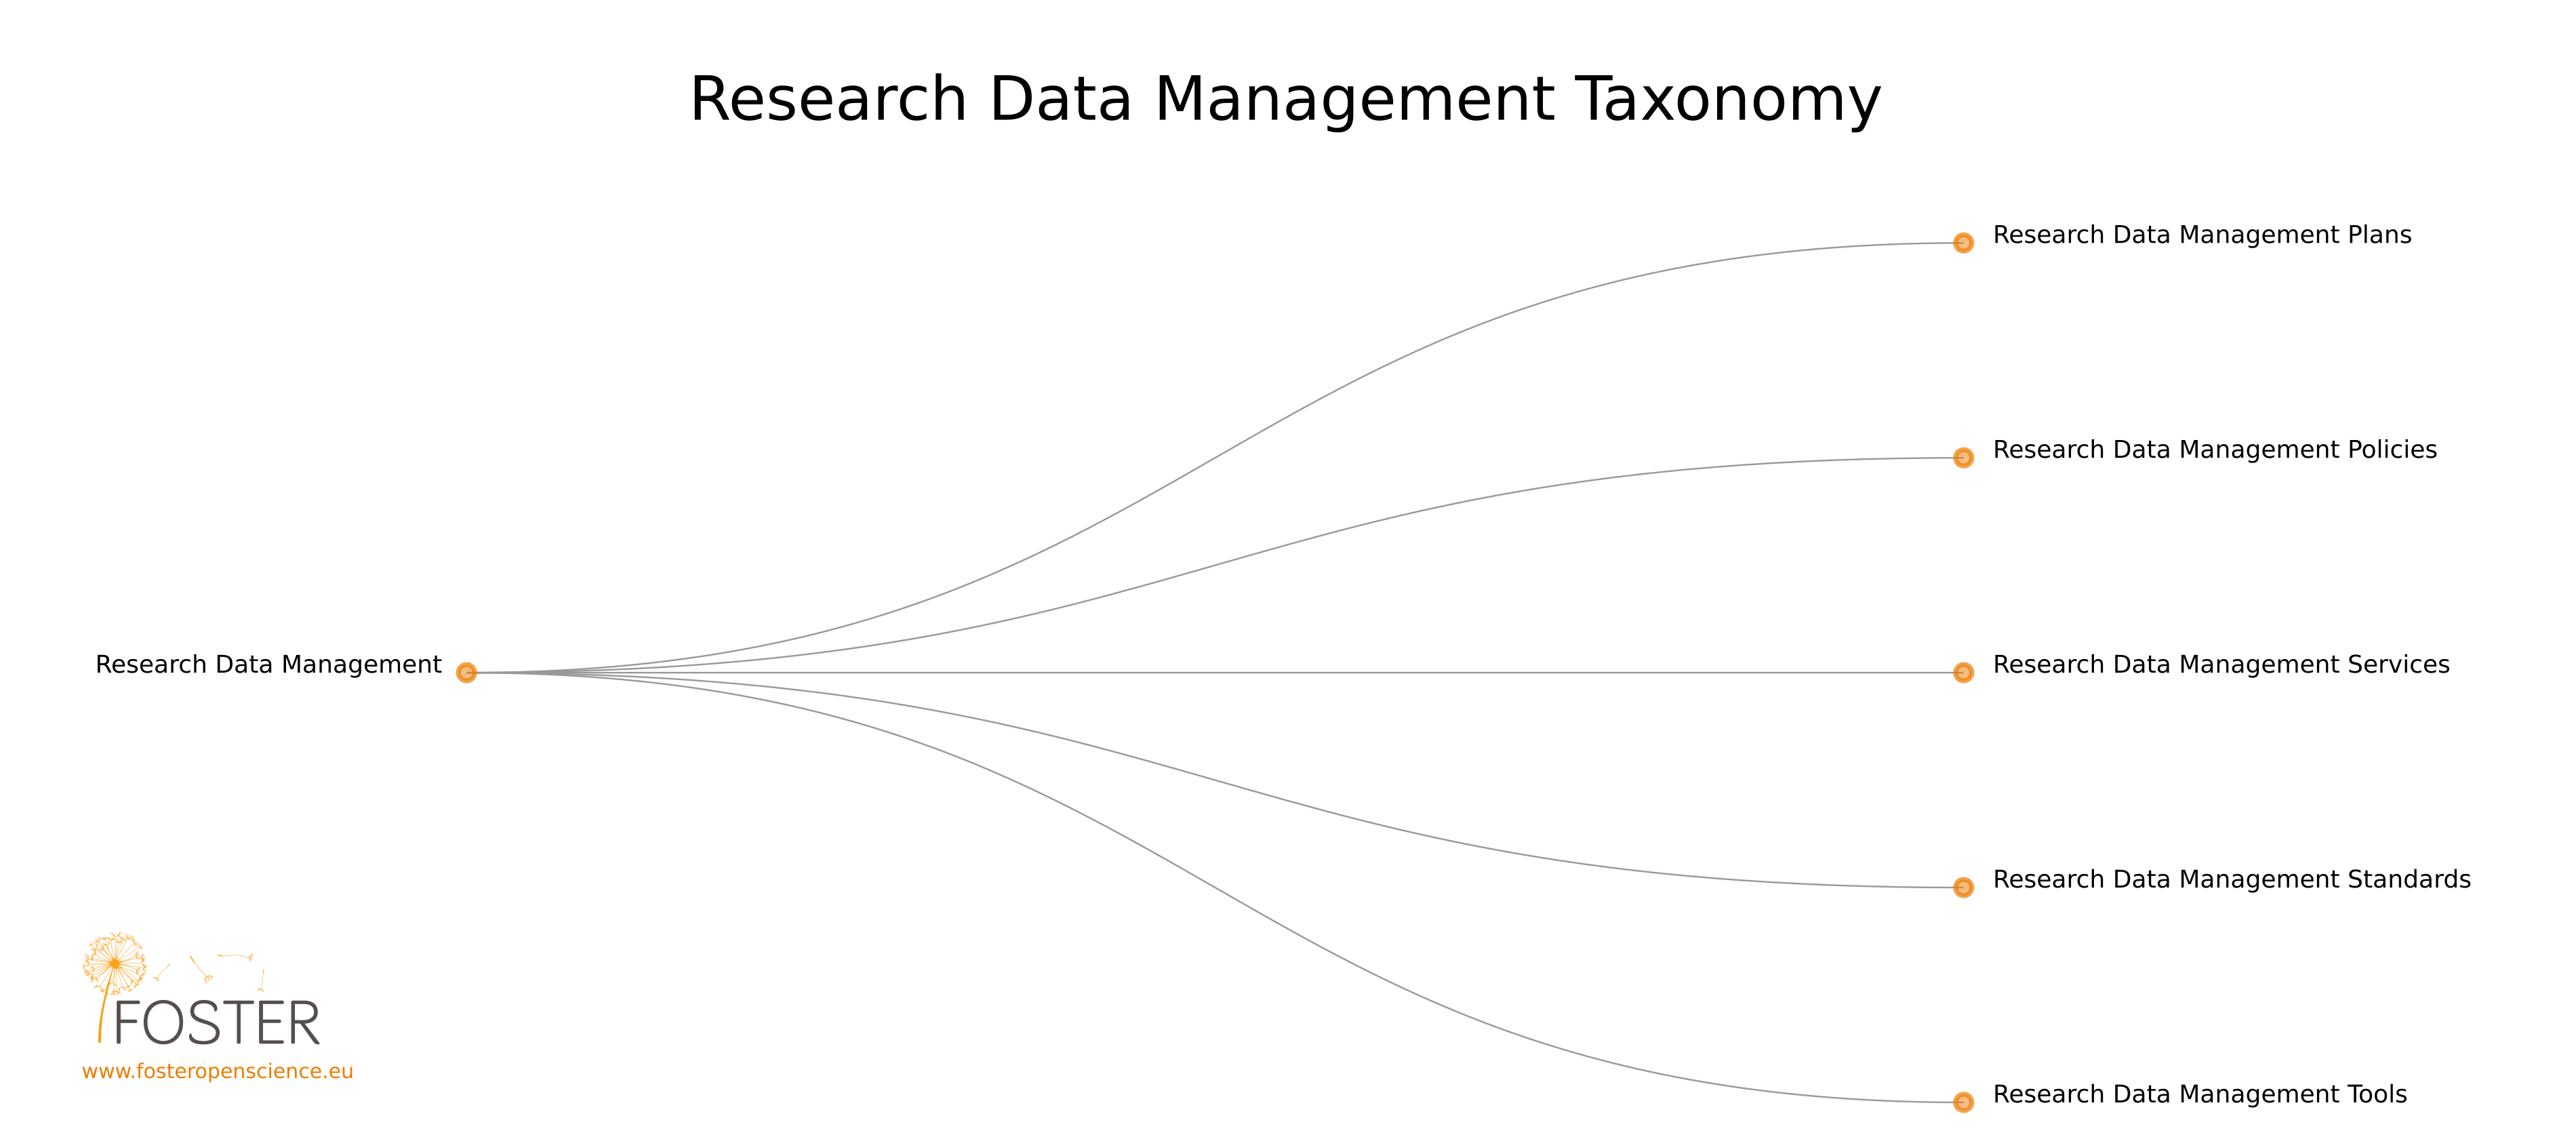 Research Data Management taxonomy by FOSTER